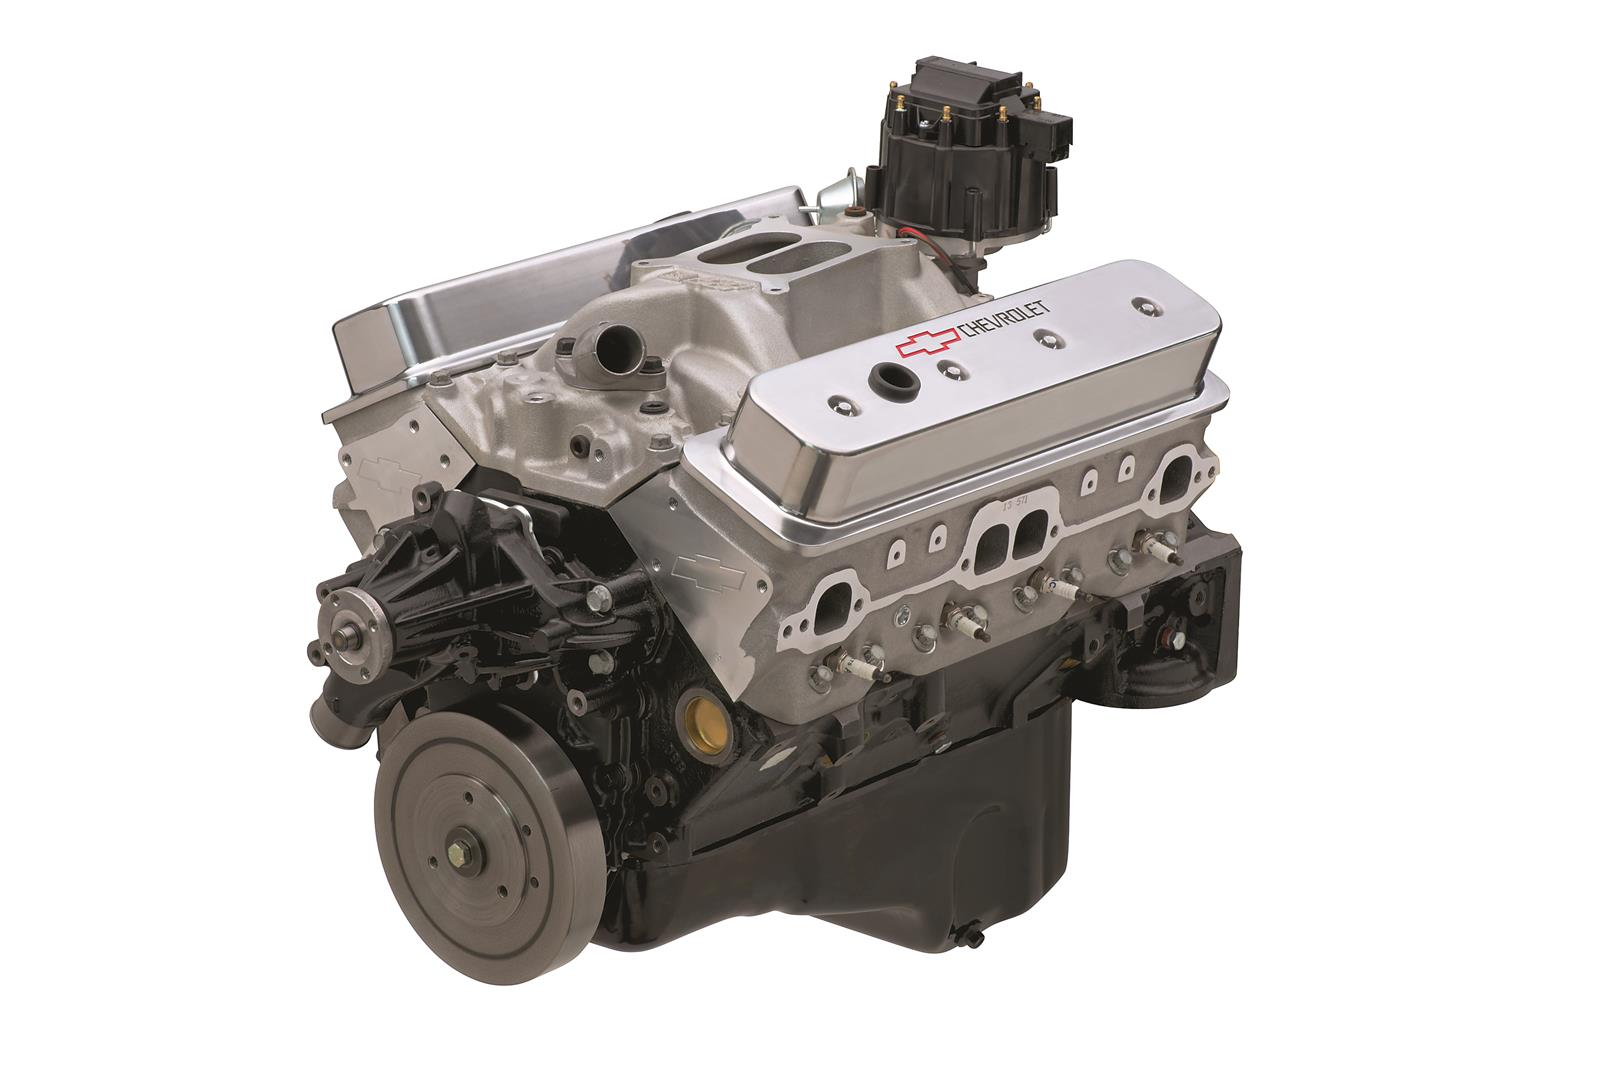 hight resolution of chevrolet performance sp350 385 hp base long block crate engines 19417624 free shipping on orders over 99 at summit racing